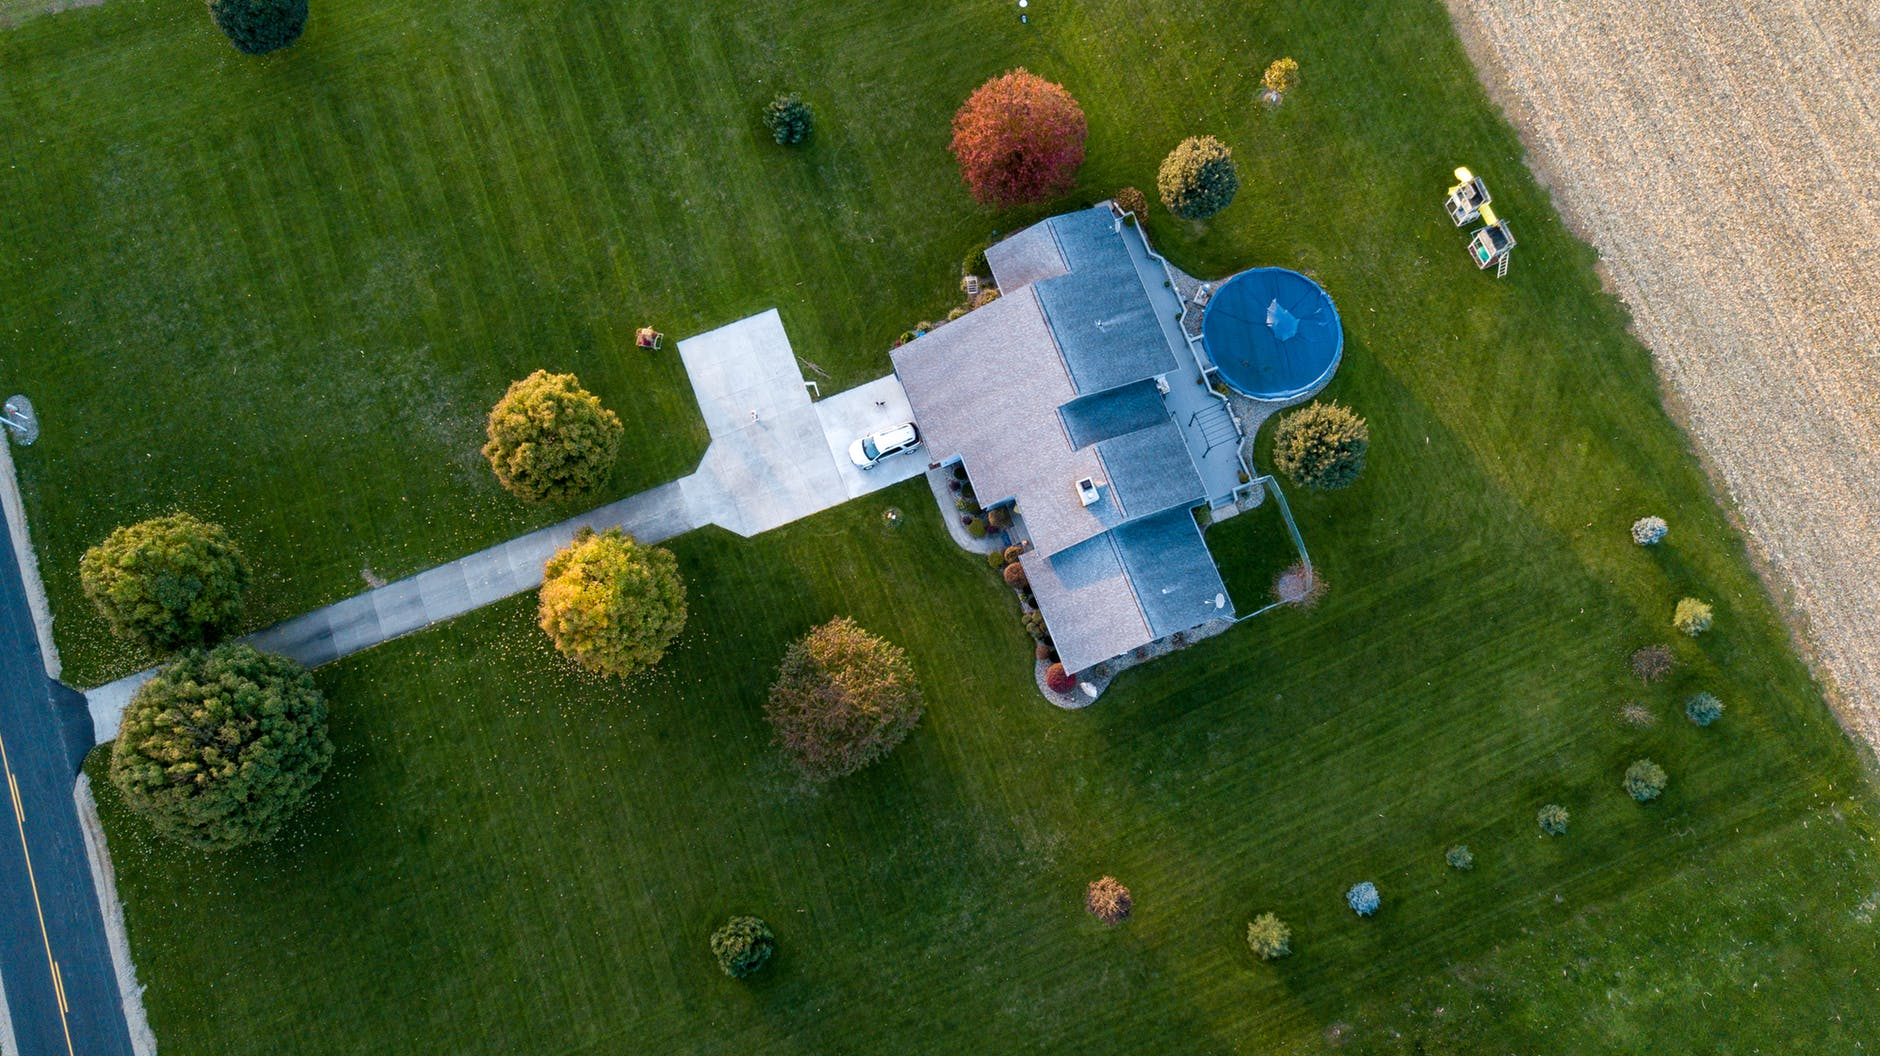 aerial view of a house with a large lawn area